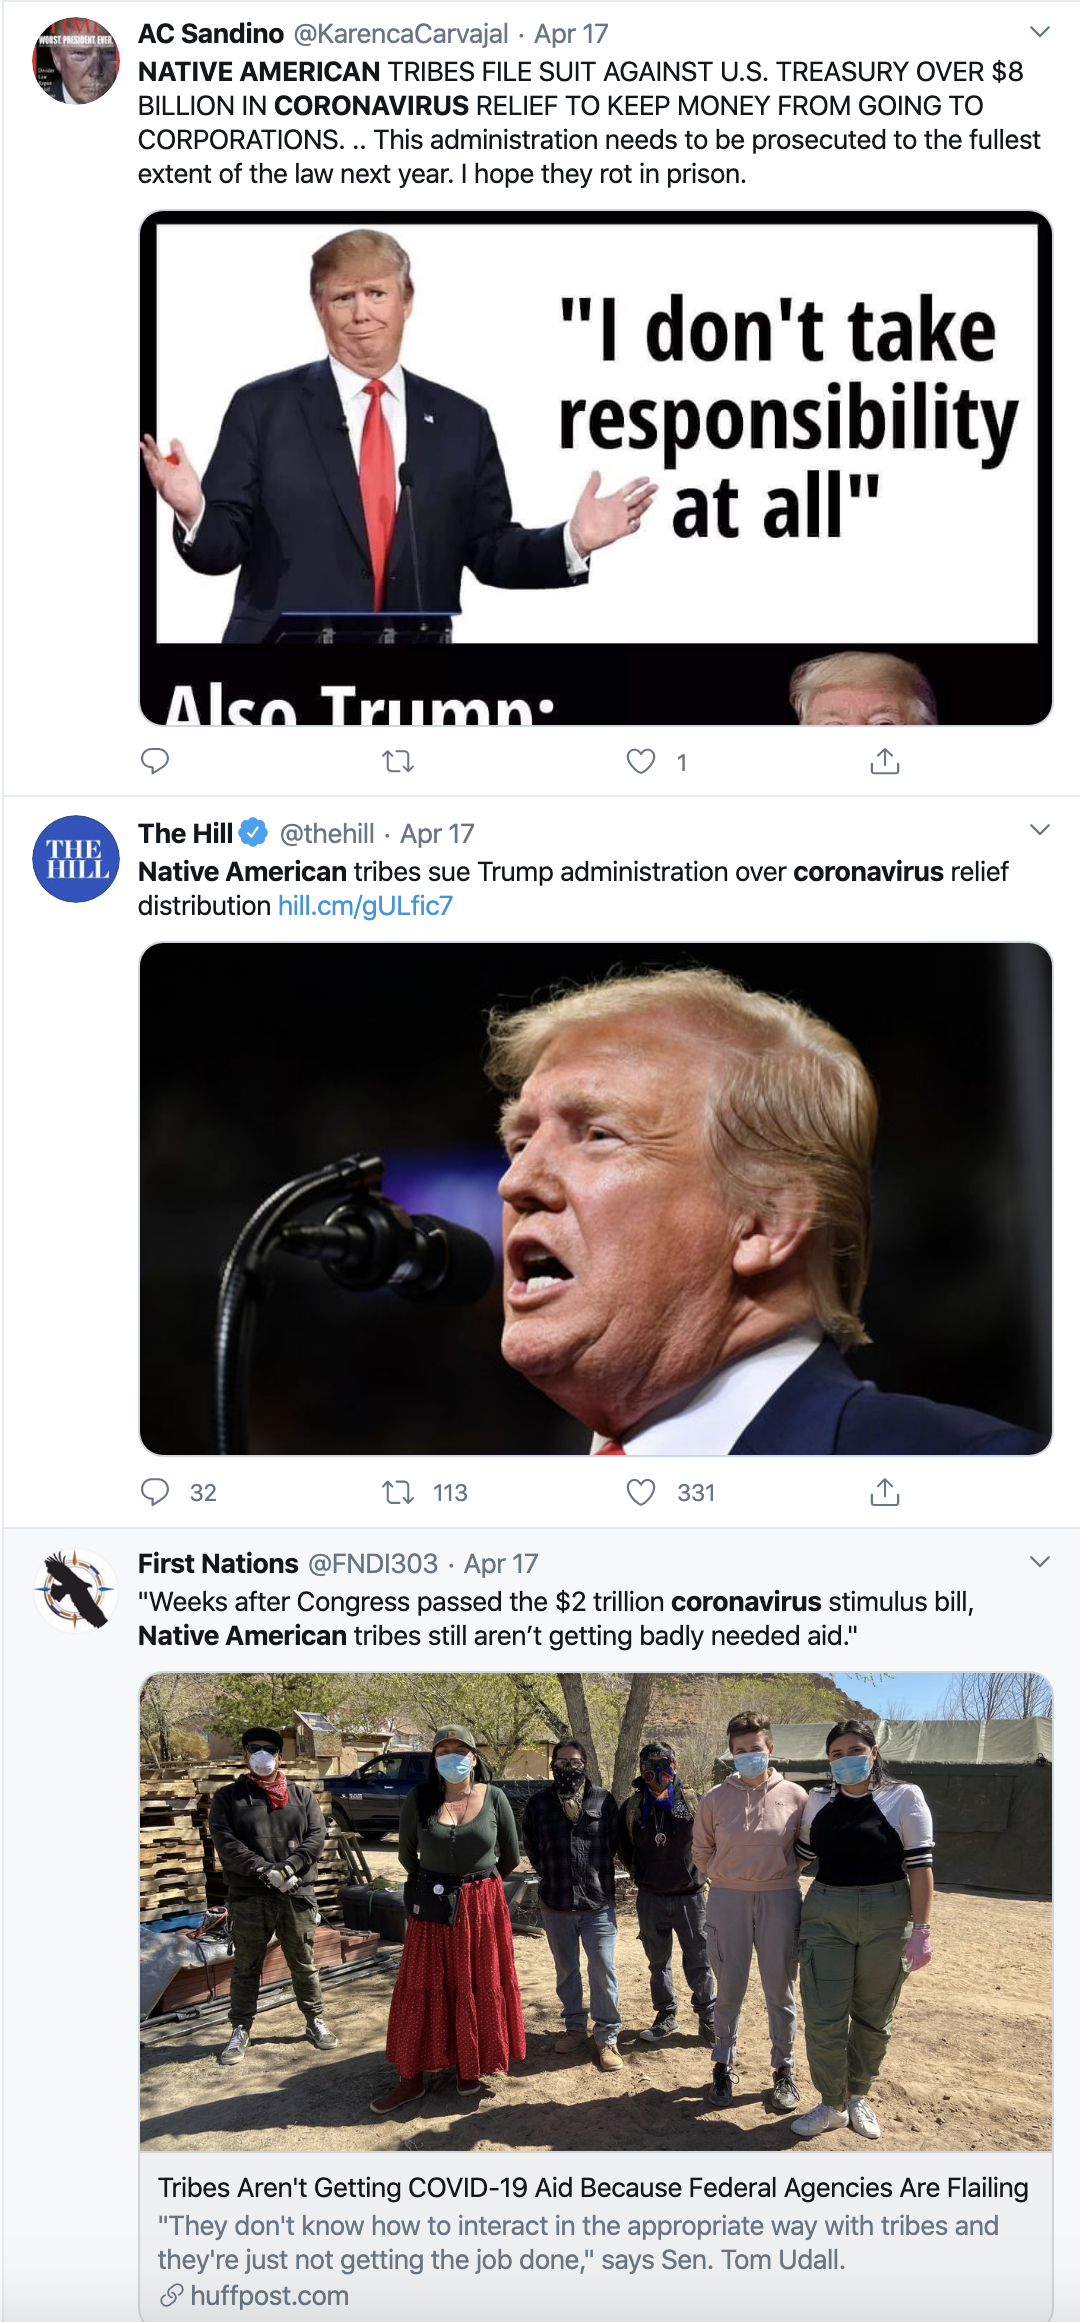 Screen-Shot-2020-04-23-at-2.54.14-PM 11 Native Tribes Sue Trump Over Coronavirus Response Featured Healthcare Politics Racism Top Stories